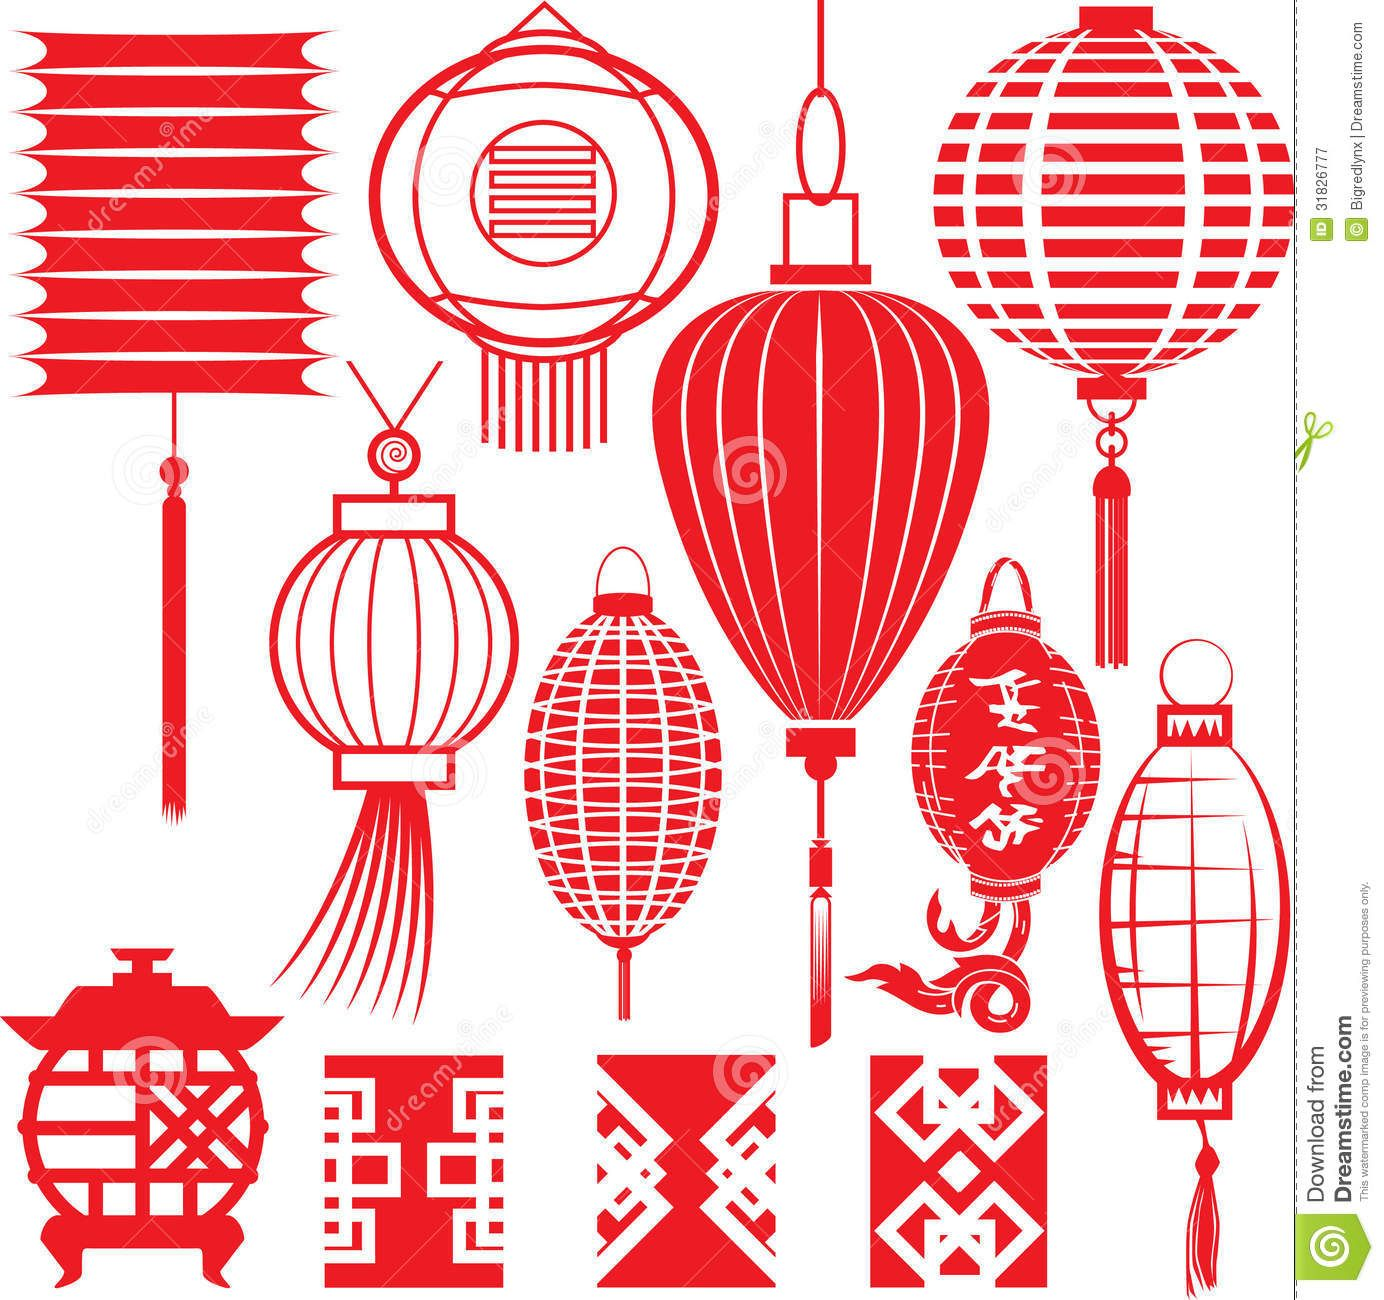 Illustration about Clip art collection of chinese lantern.